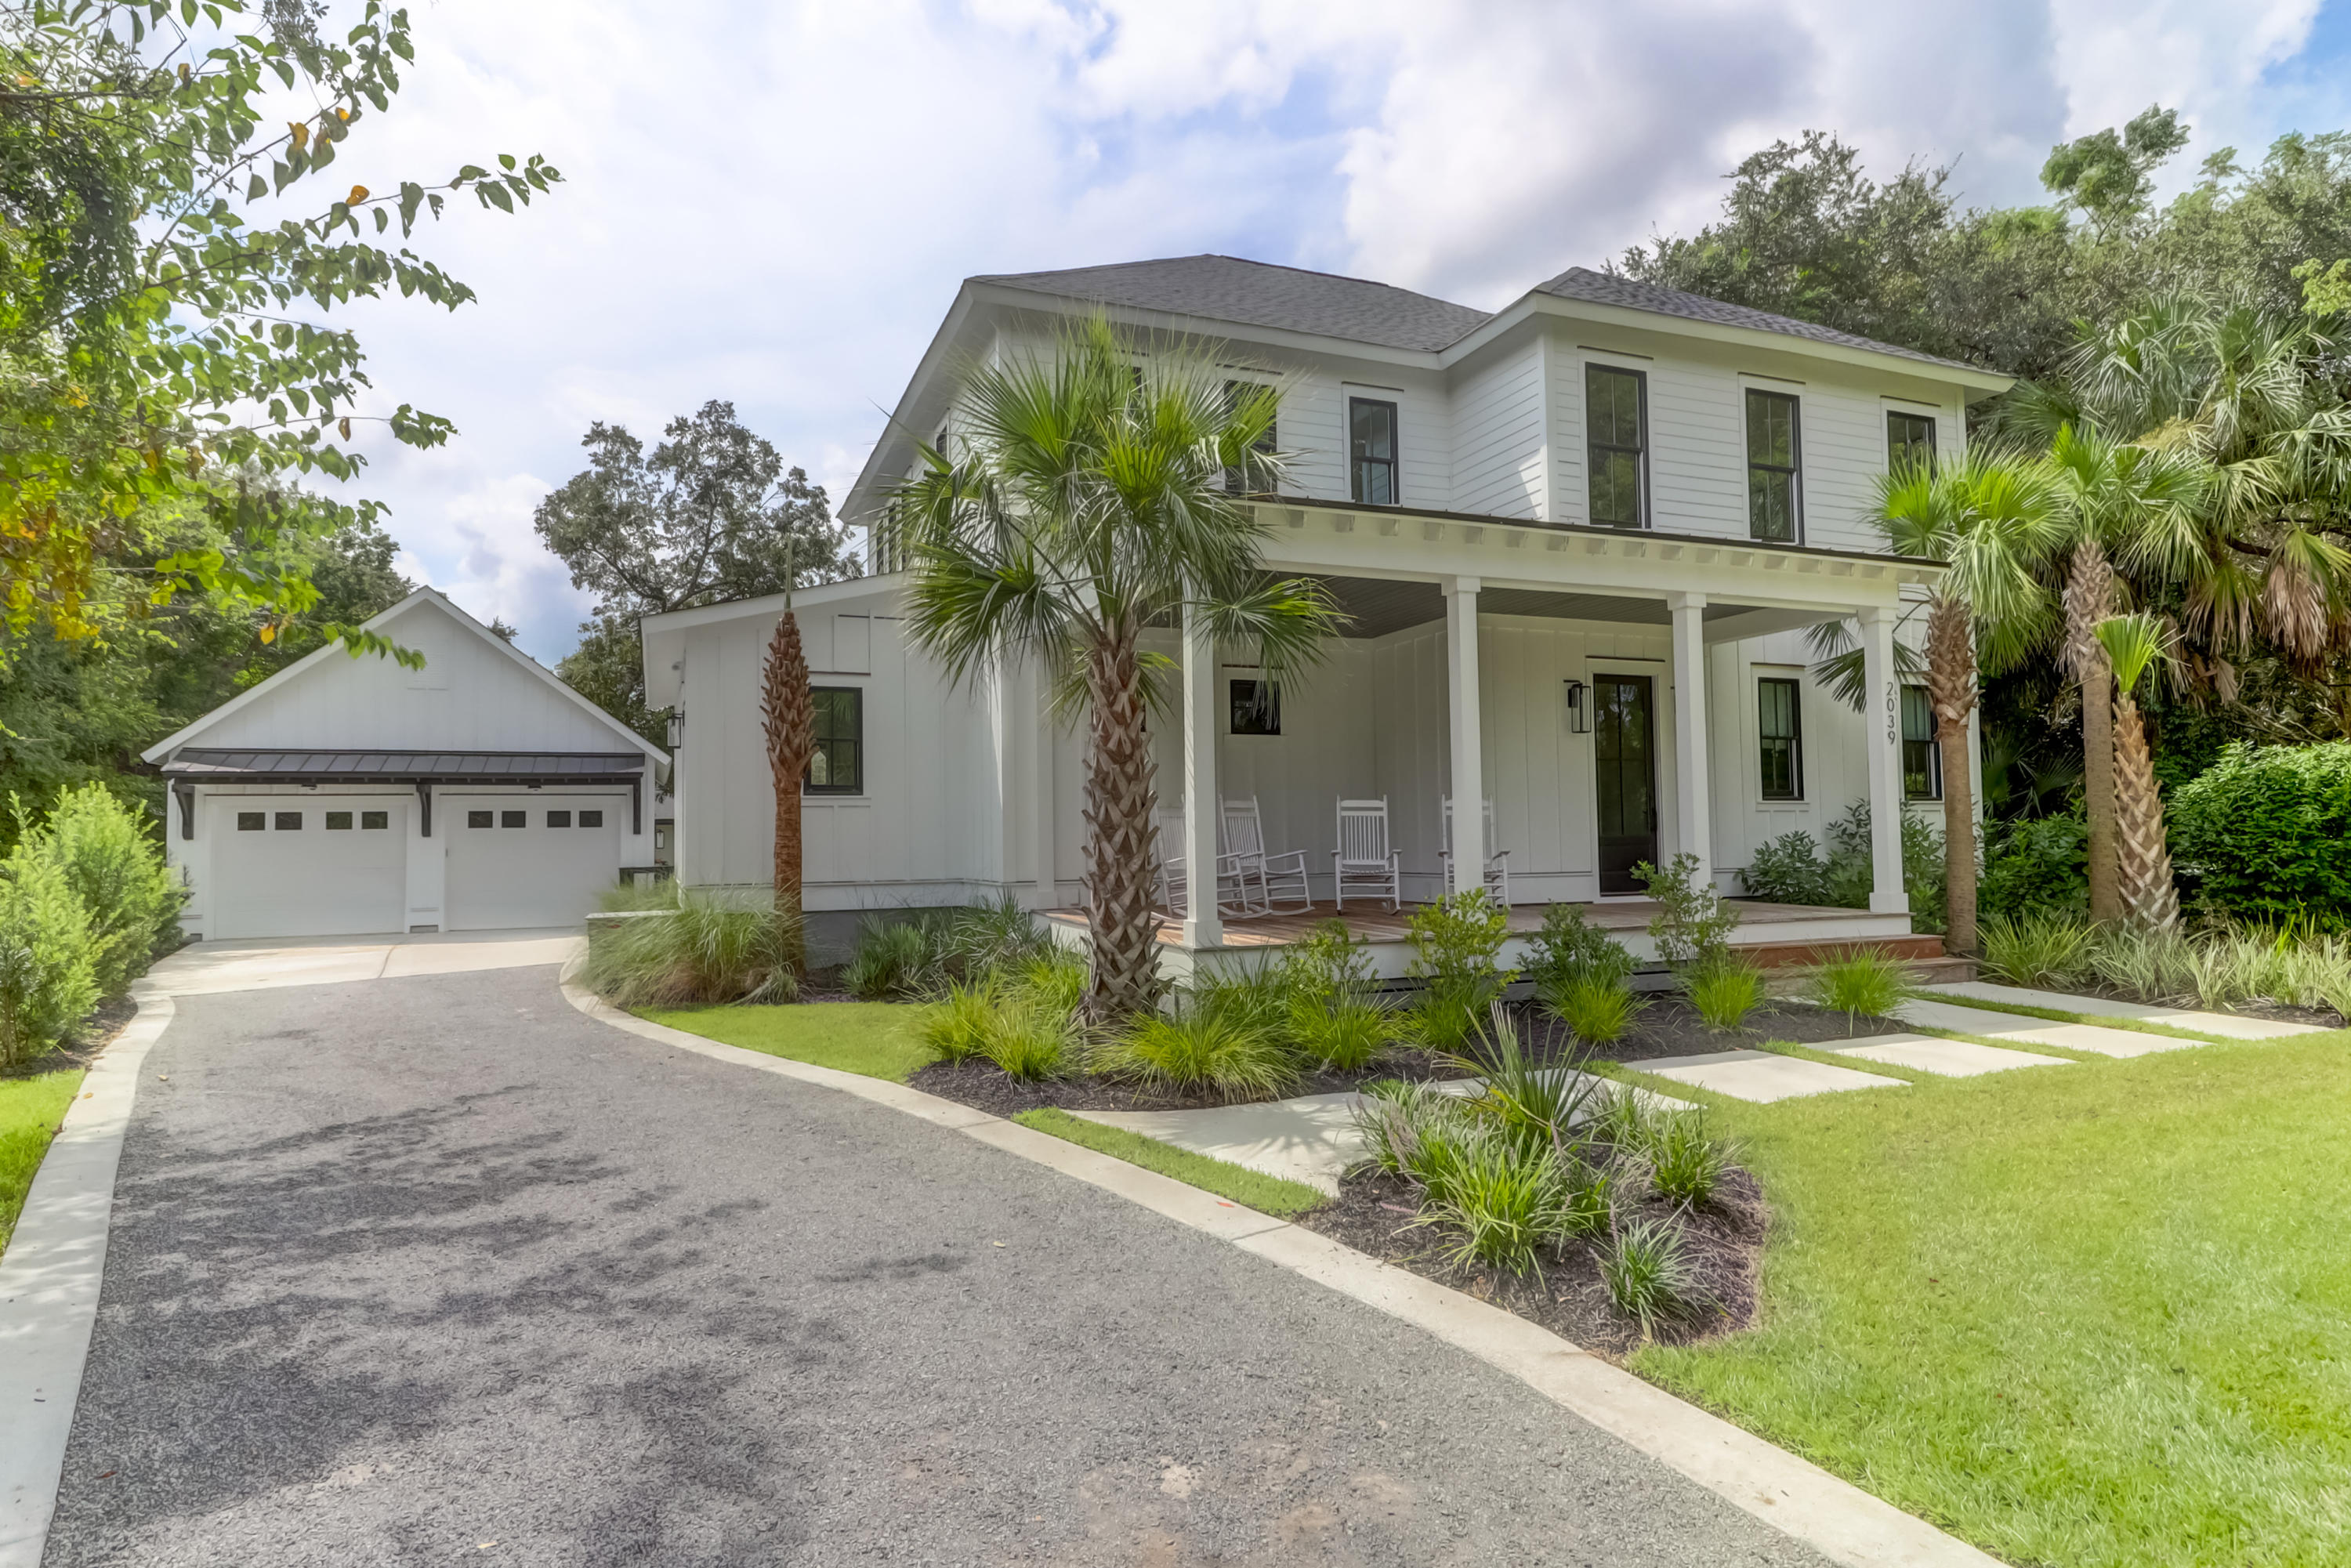 Riverland Terrace Homes For Sale - 2039 Parkway Dr, Charleston, SC - 14